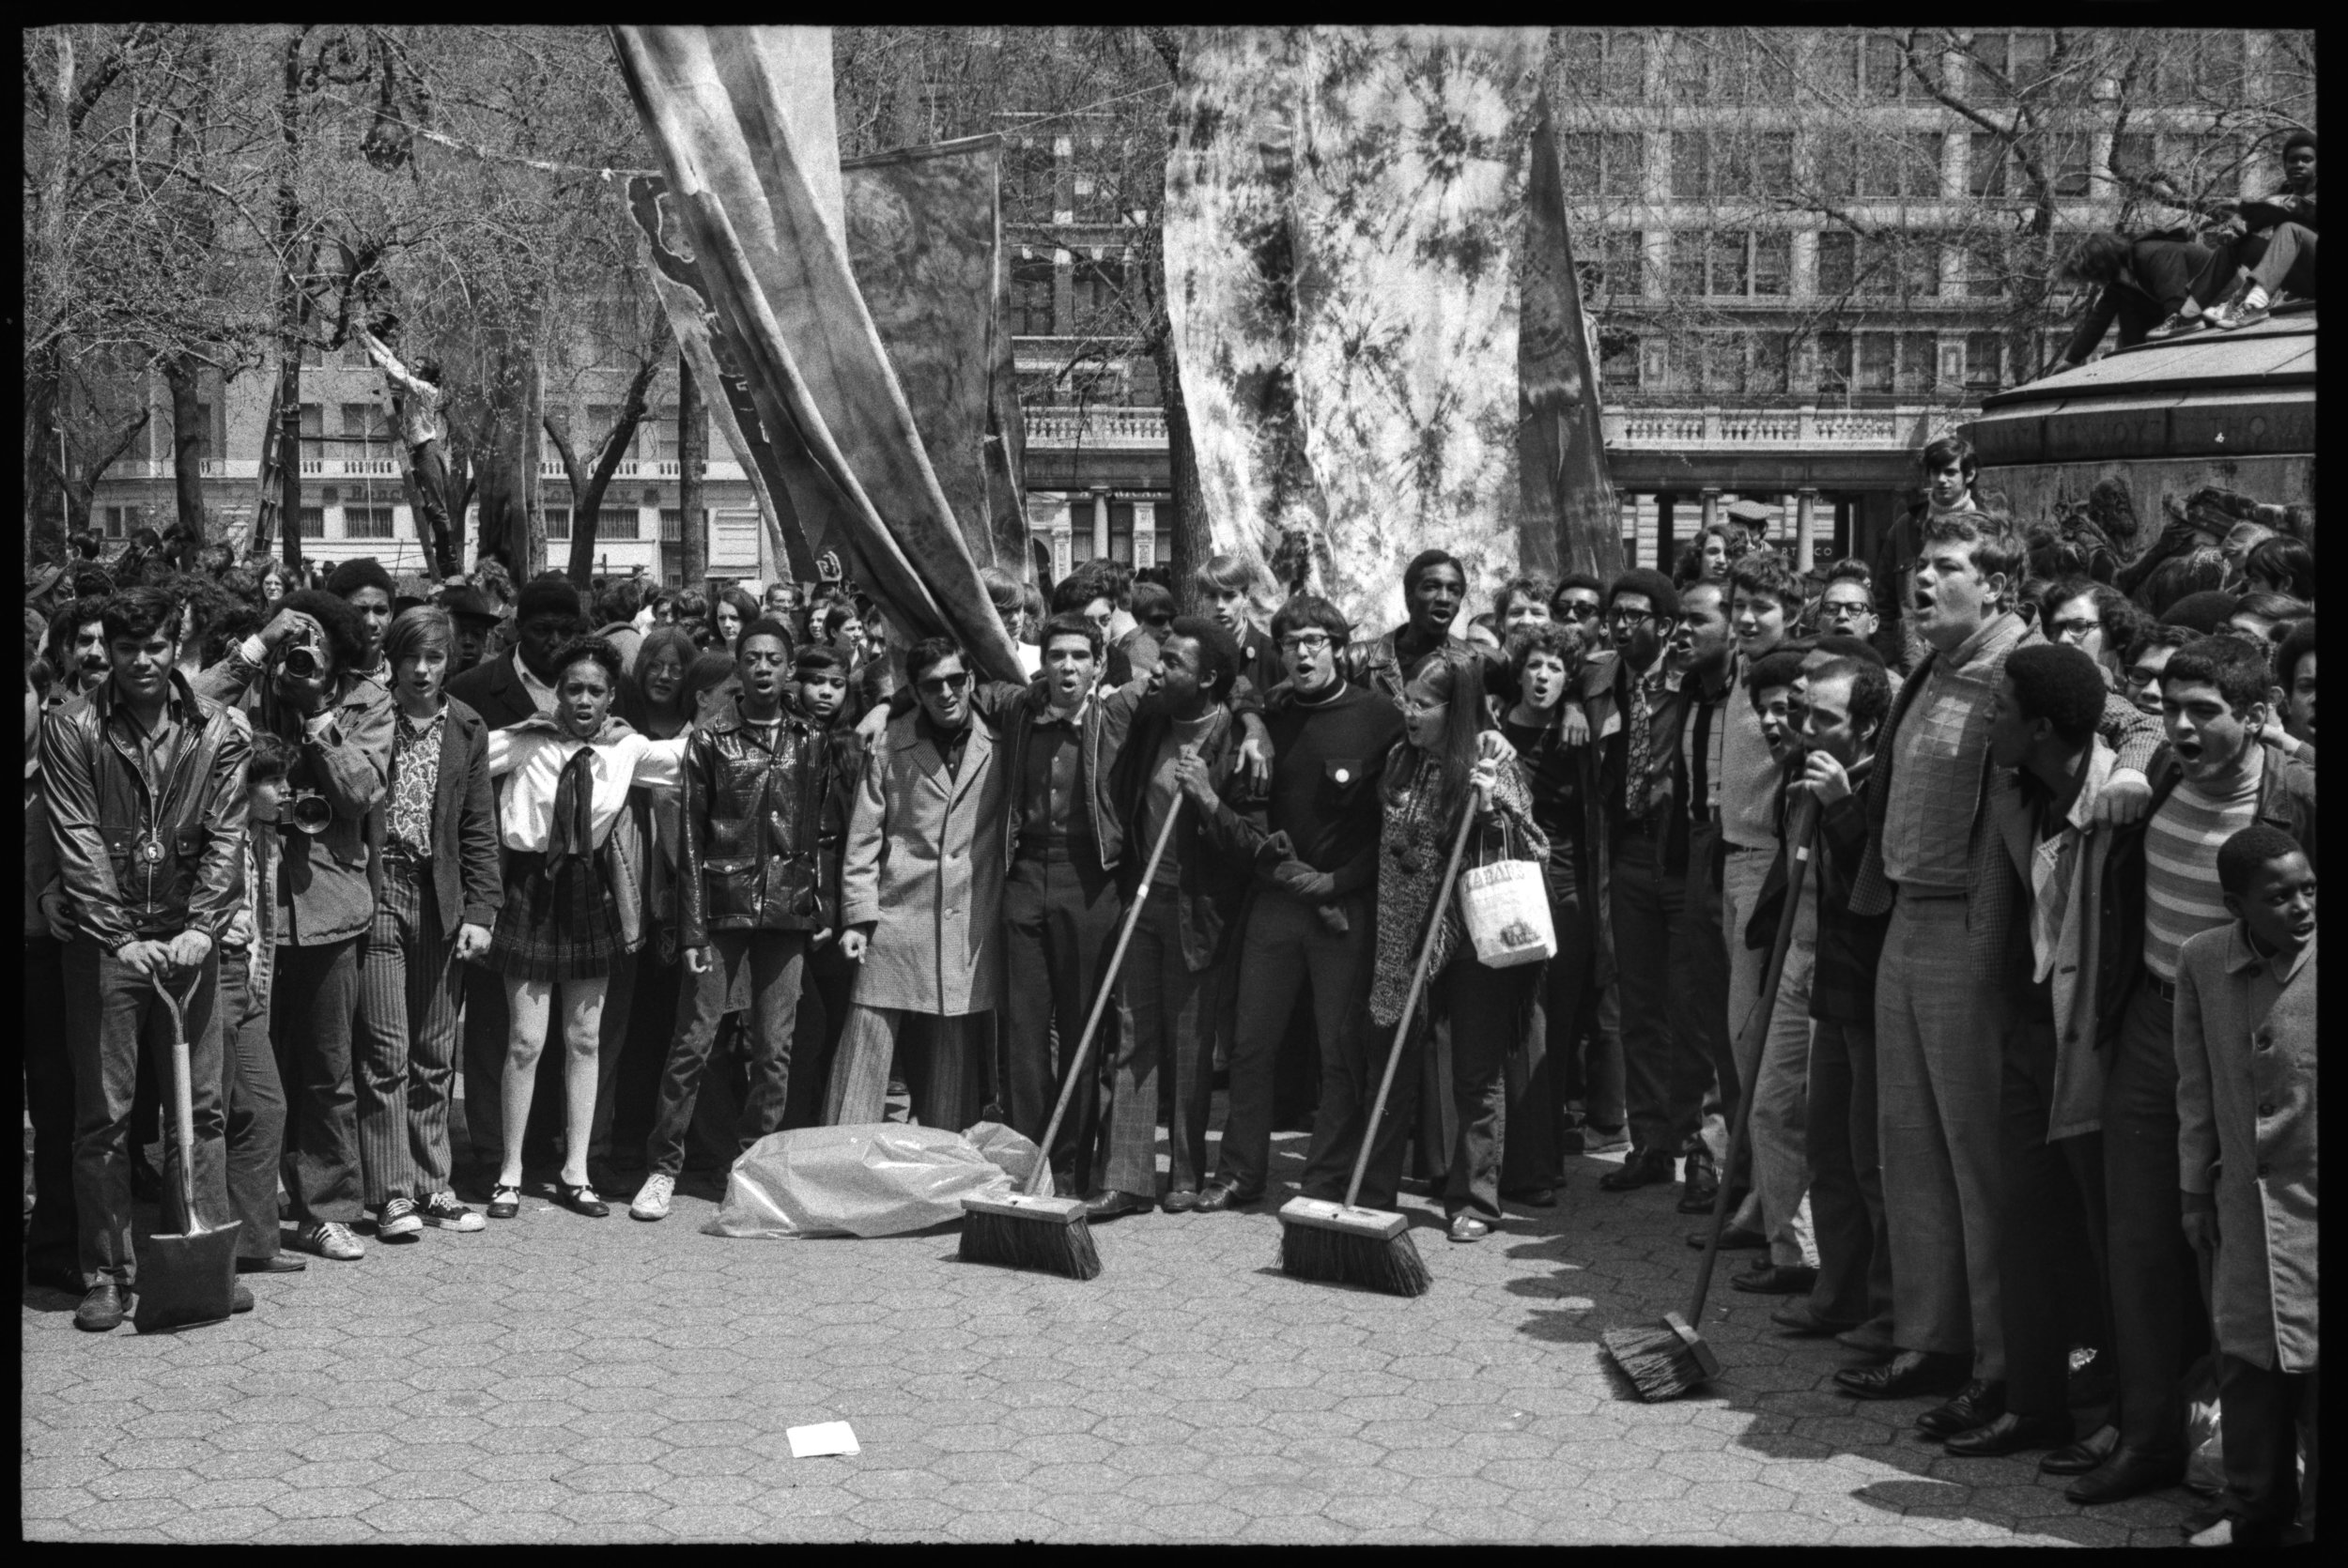 Sweepers at Earth Day demonstrations at Union Square, April 22, 1970